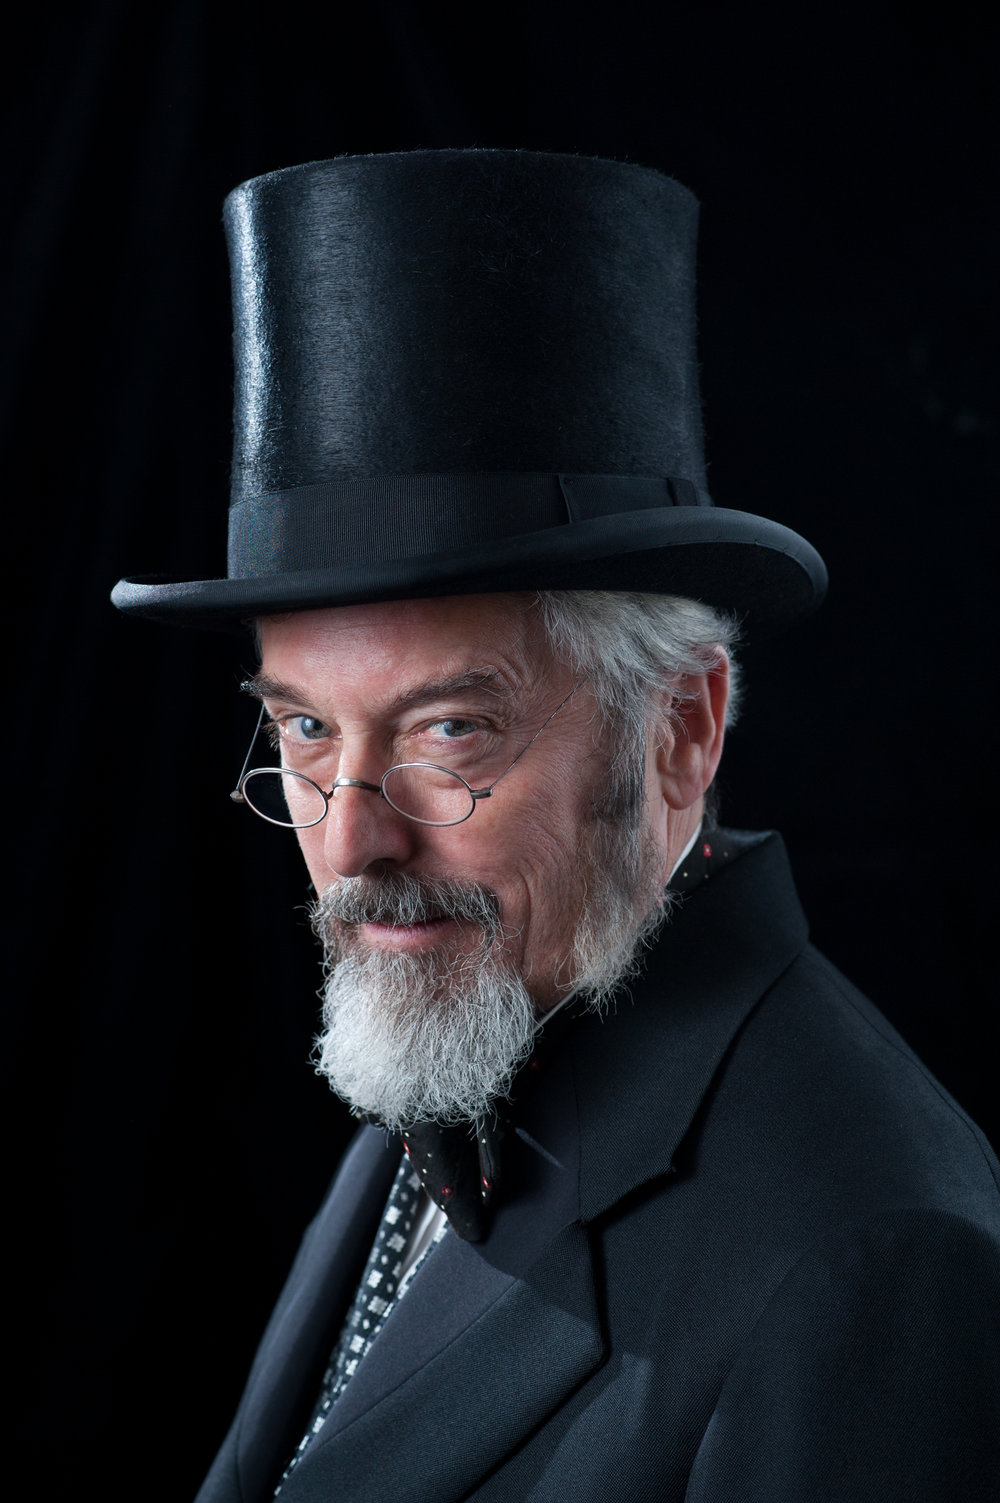 Edit_Scrooge_Portraits_089.jpg